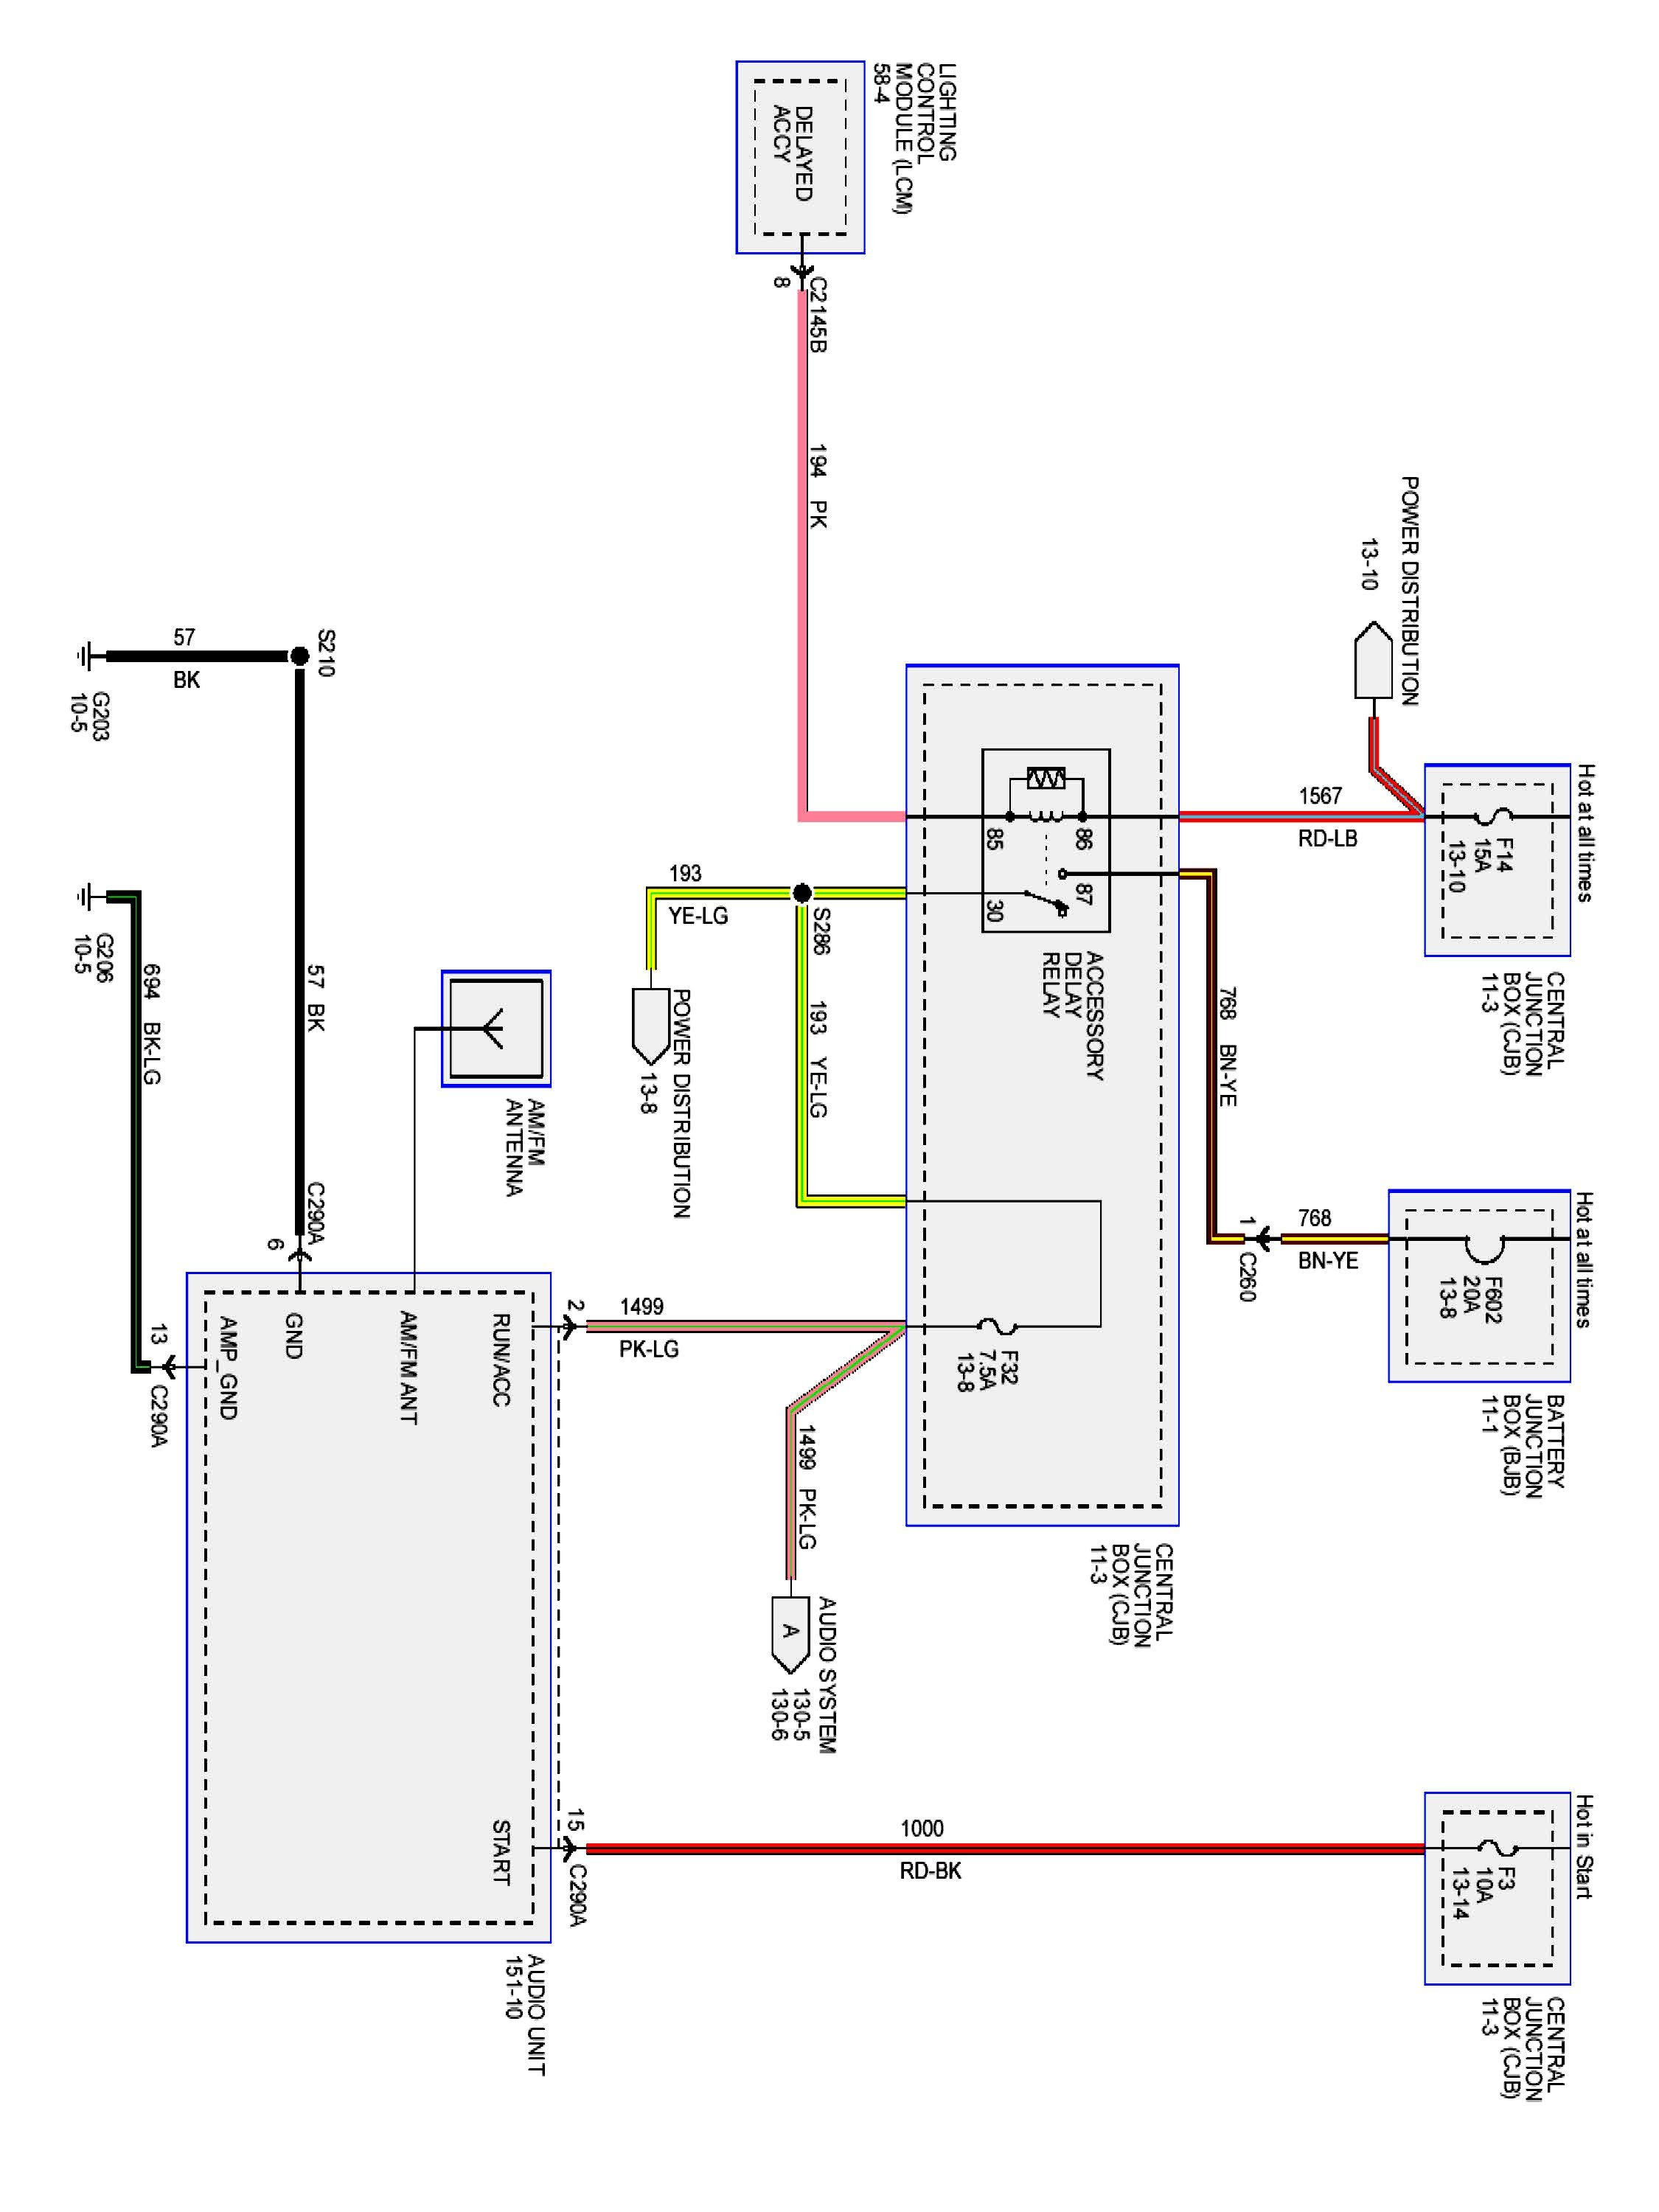 Wiring Schematic 1999 Lincoln Continental - Patient Entertainment System Wiring  Diagram - piping.2001ajau.waystar.fr   Wiring Schematic 1999 Lincoln Continental      Wiring Diagram Resource